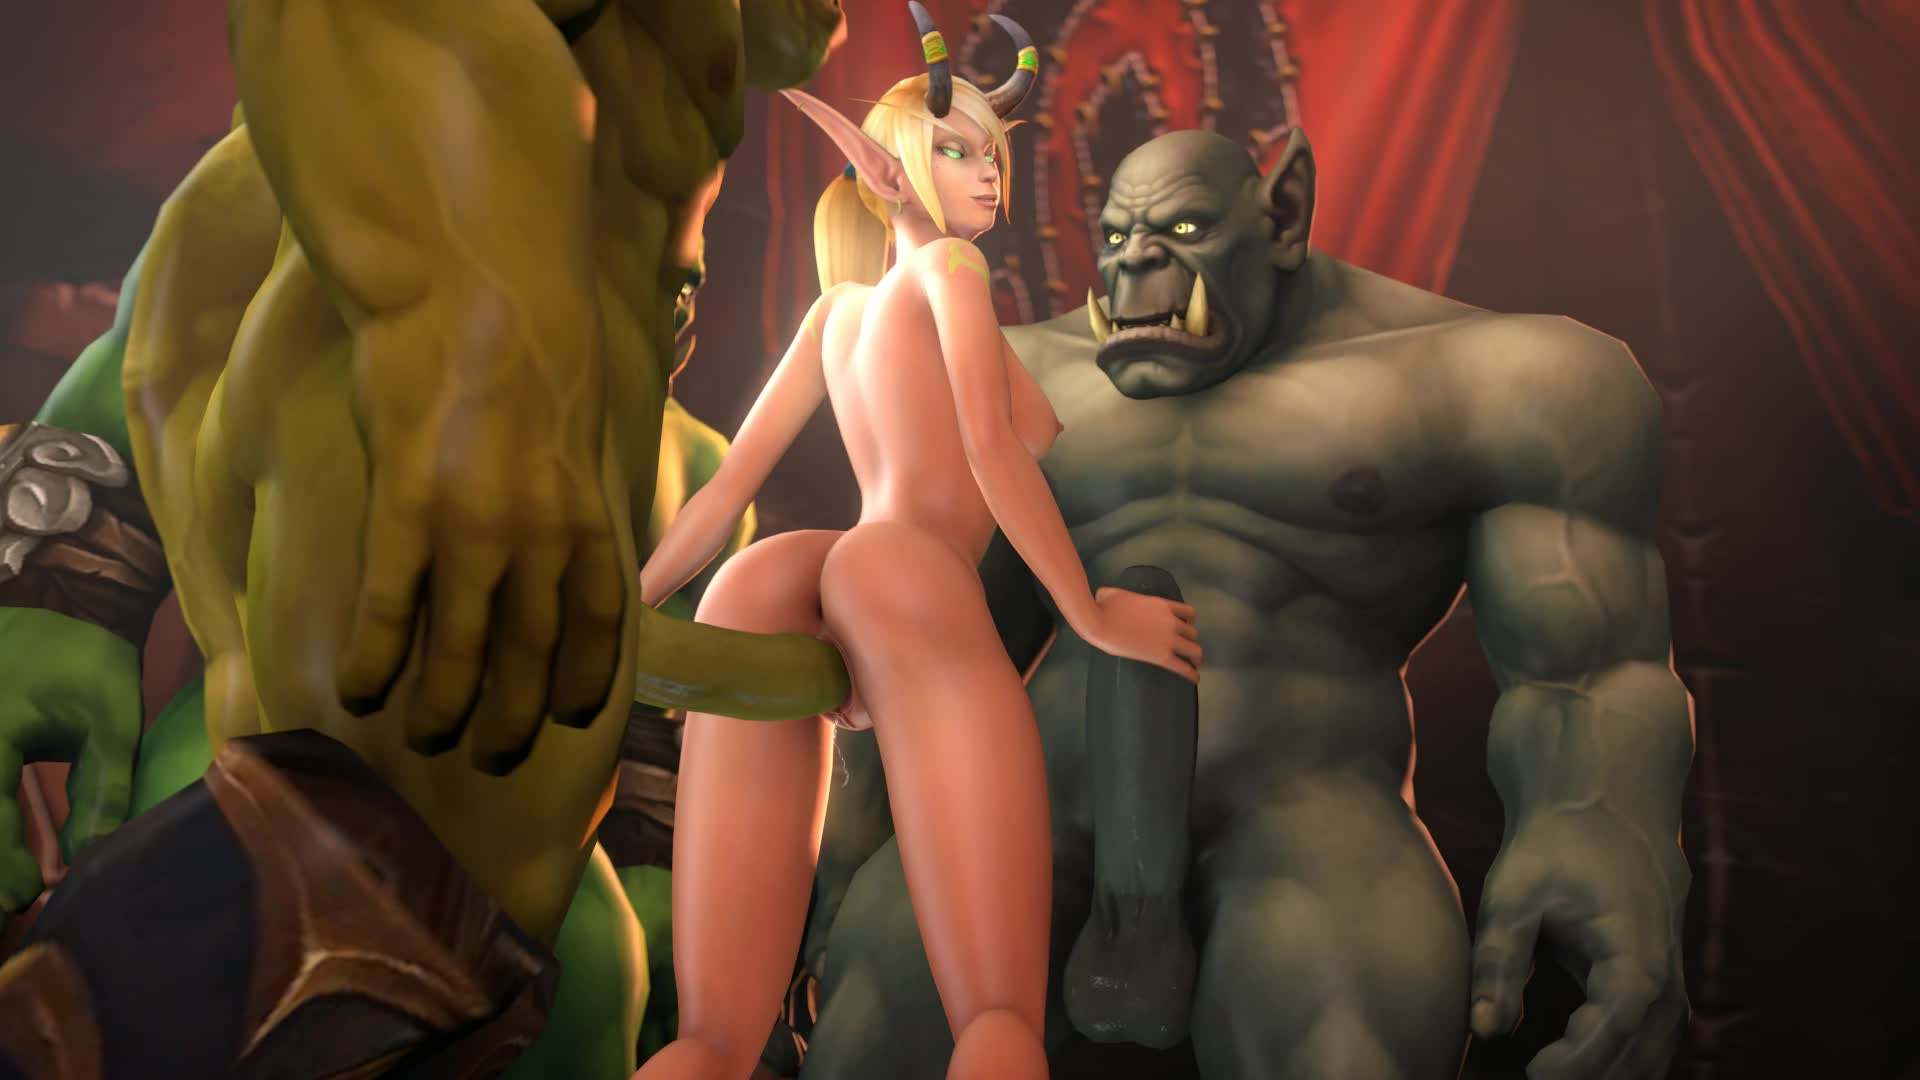 Penis and sex or blood elf free  porn picture